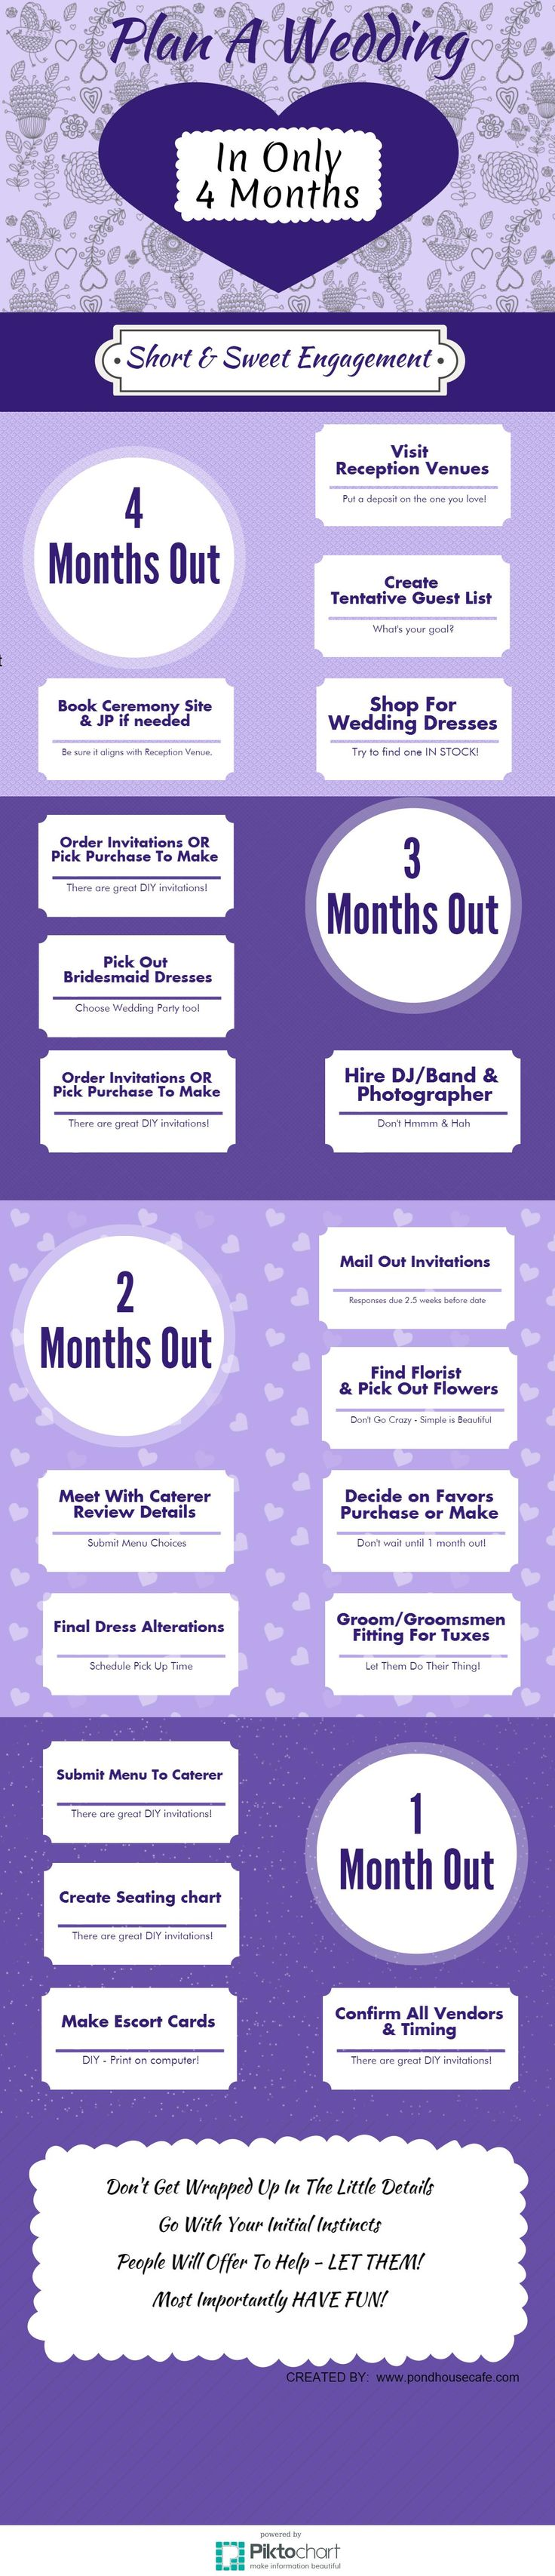 Plan a wedding in as little as 4 months! Short & Sweet Engagements are the way to go! Here is a helpful guideline to get you started! #wedding #shortengagement